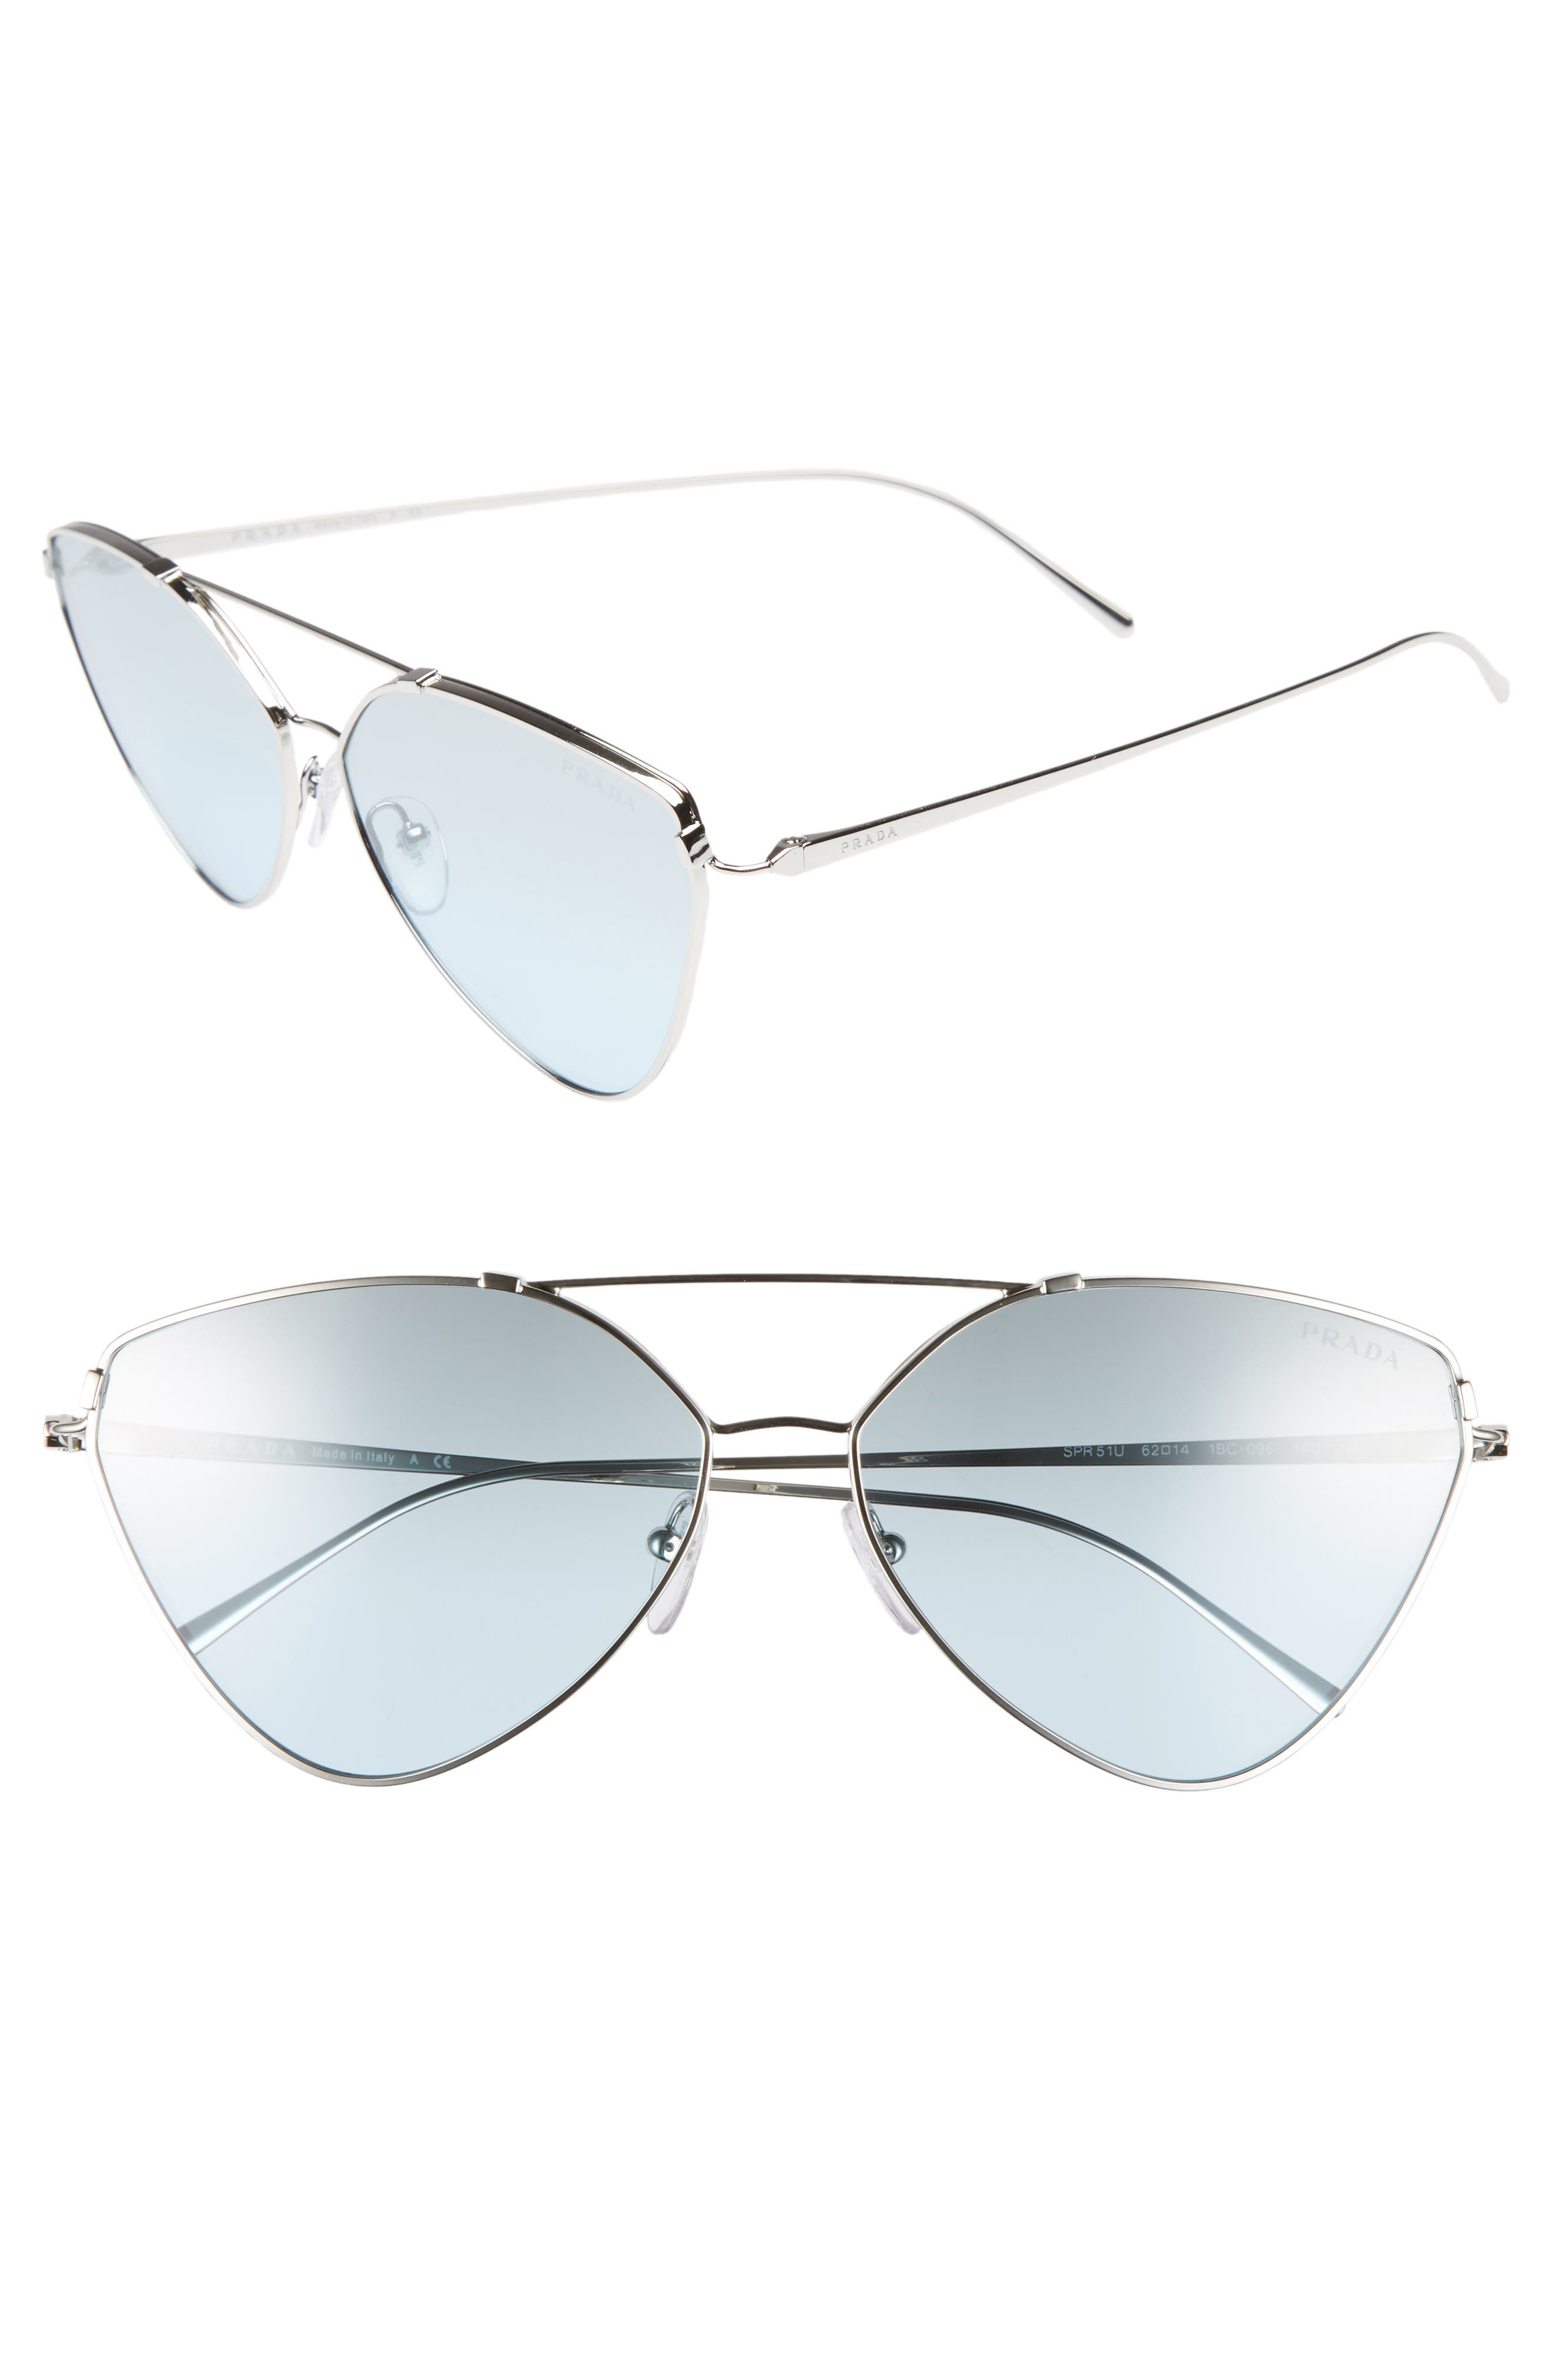 Alternate Image 1 Selected - Prada 62mm Oversize Aviator Sunglasses